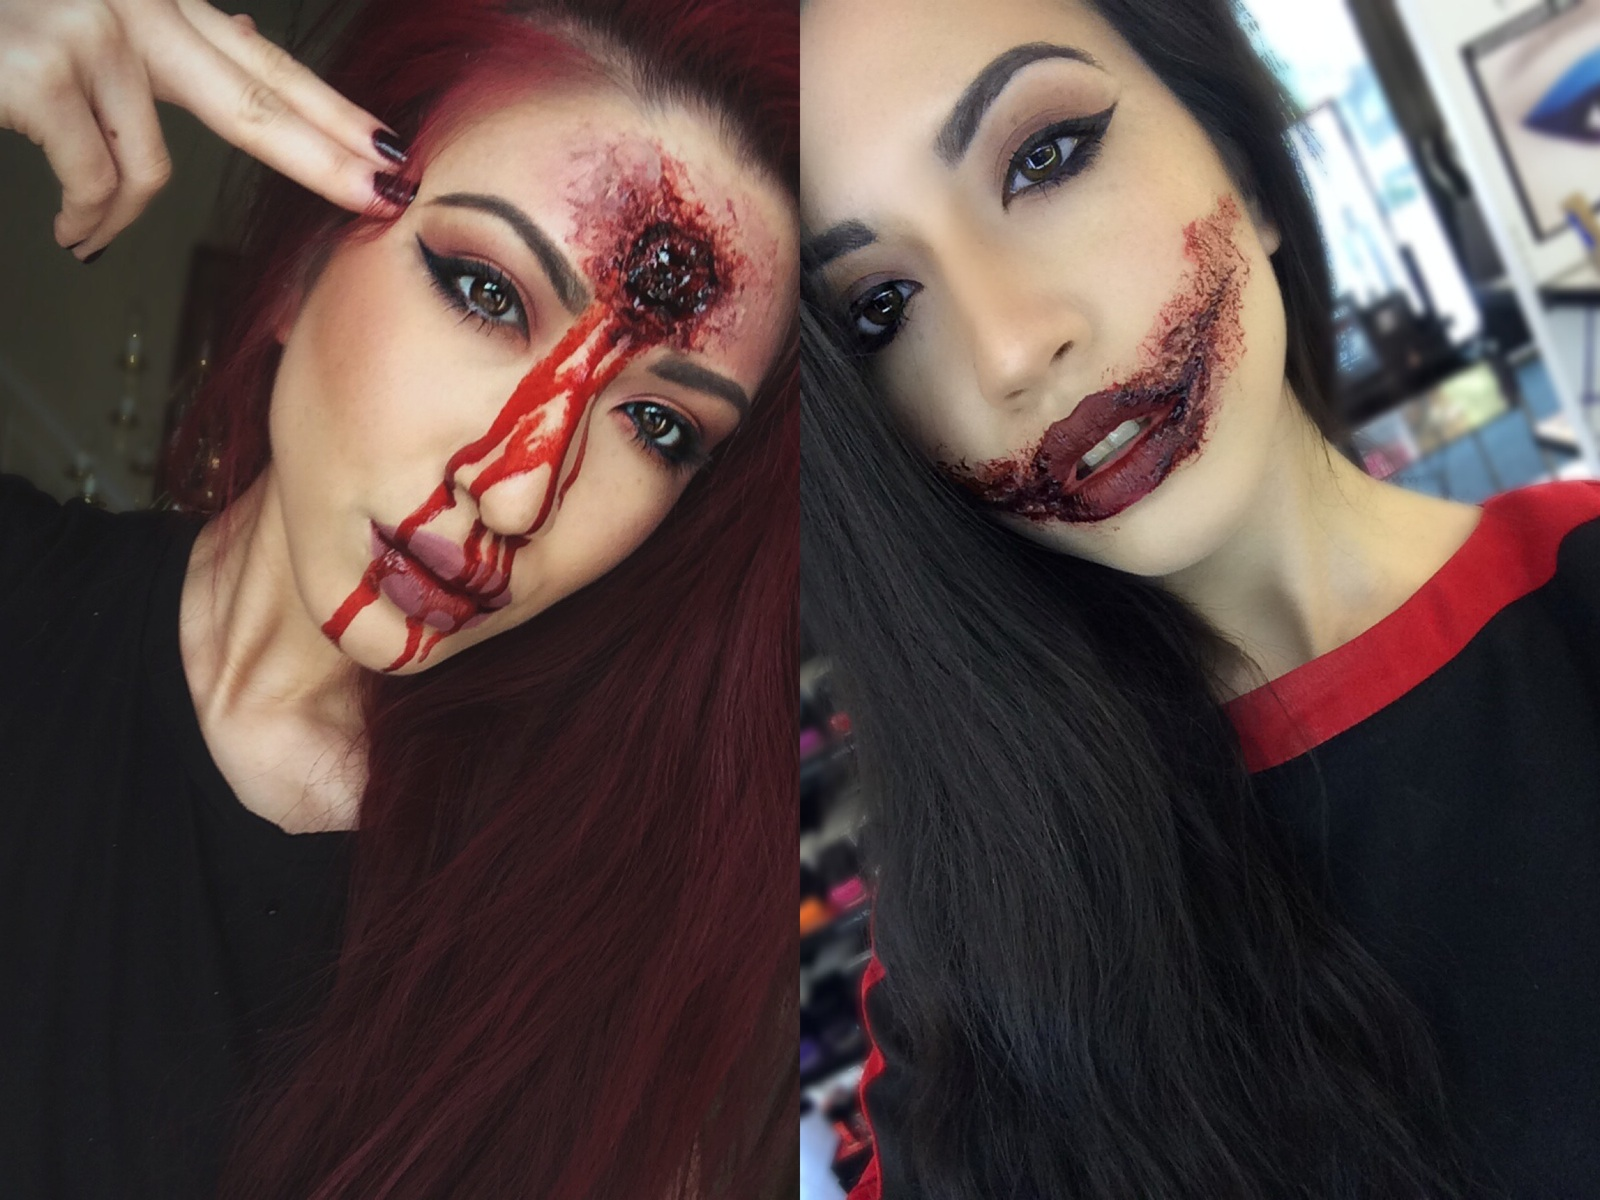 Lexi Lazaro: SFX for Beginners | Liquid Latex